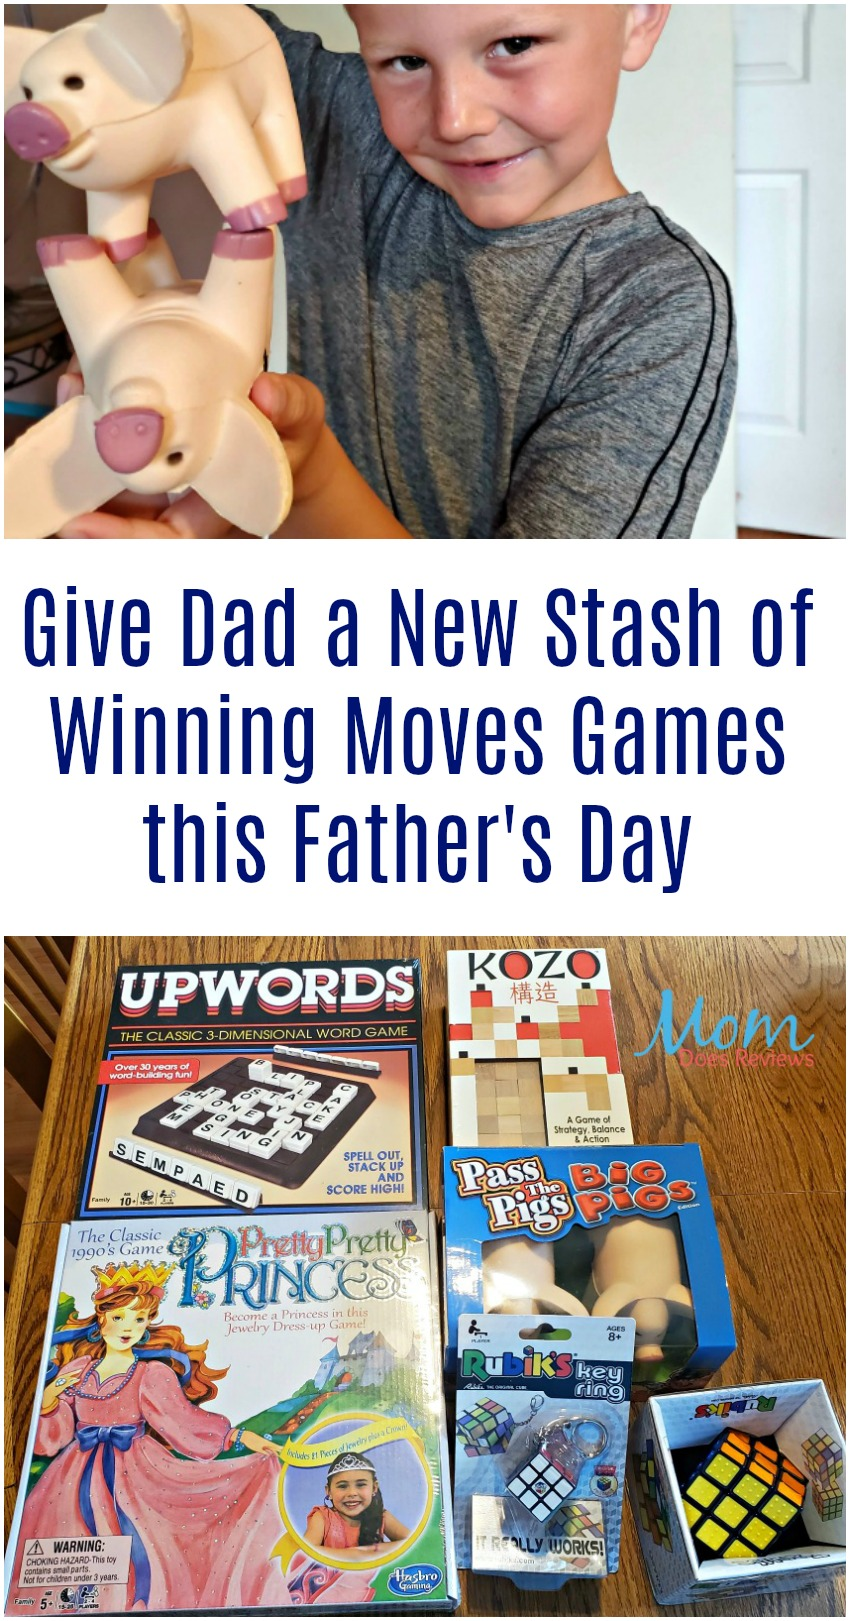 Give Dad a New Stash of Winning Moves Games this Father's Day